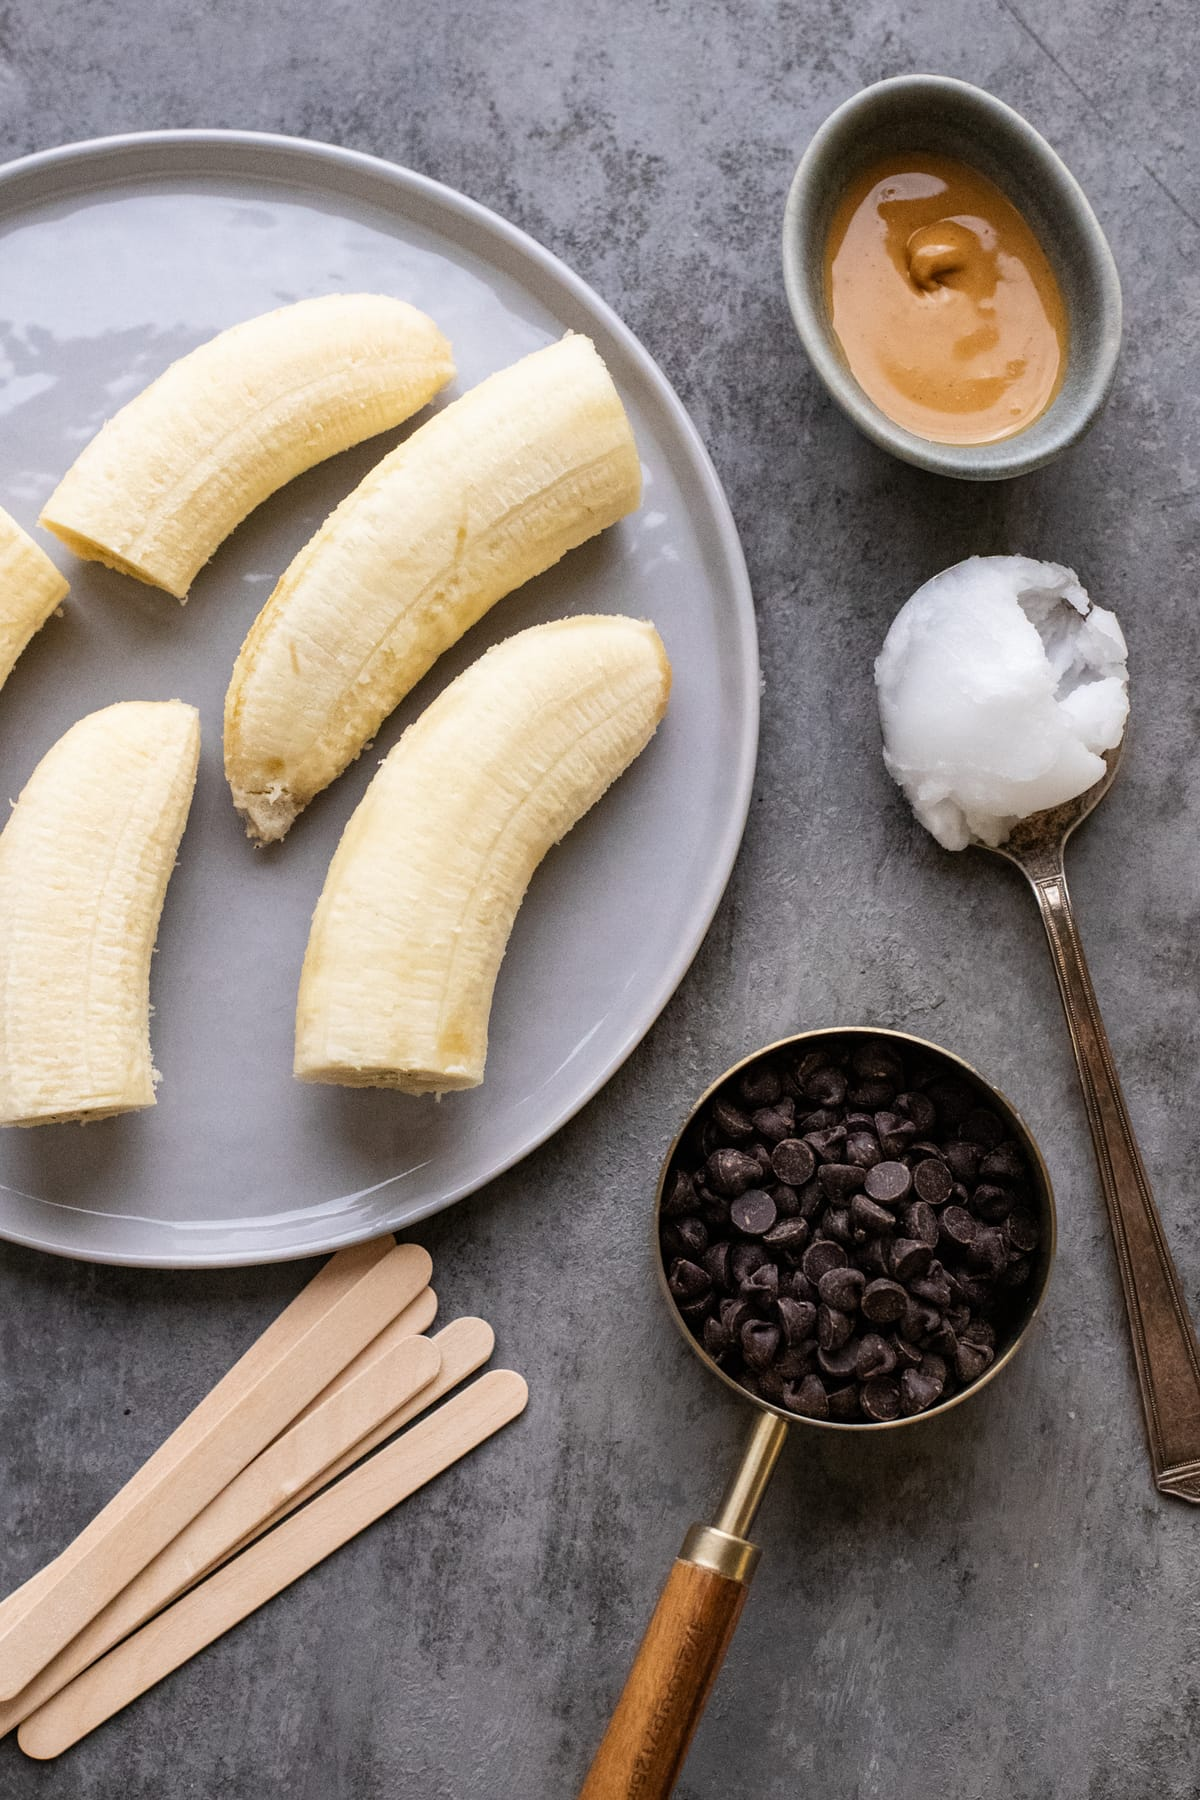 ingredients for frozen chocolate-covered bananas arranged on dark gray background.